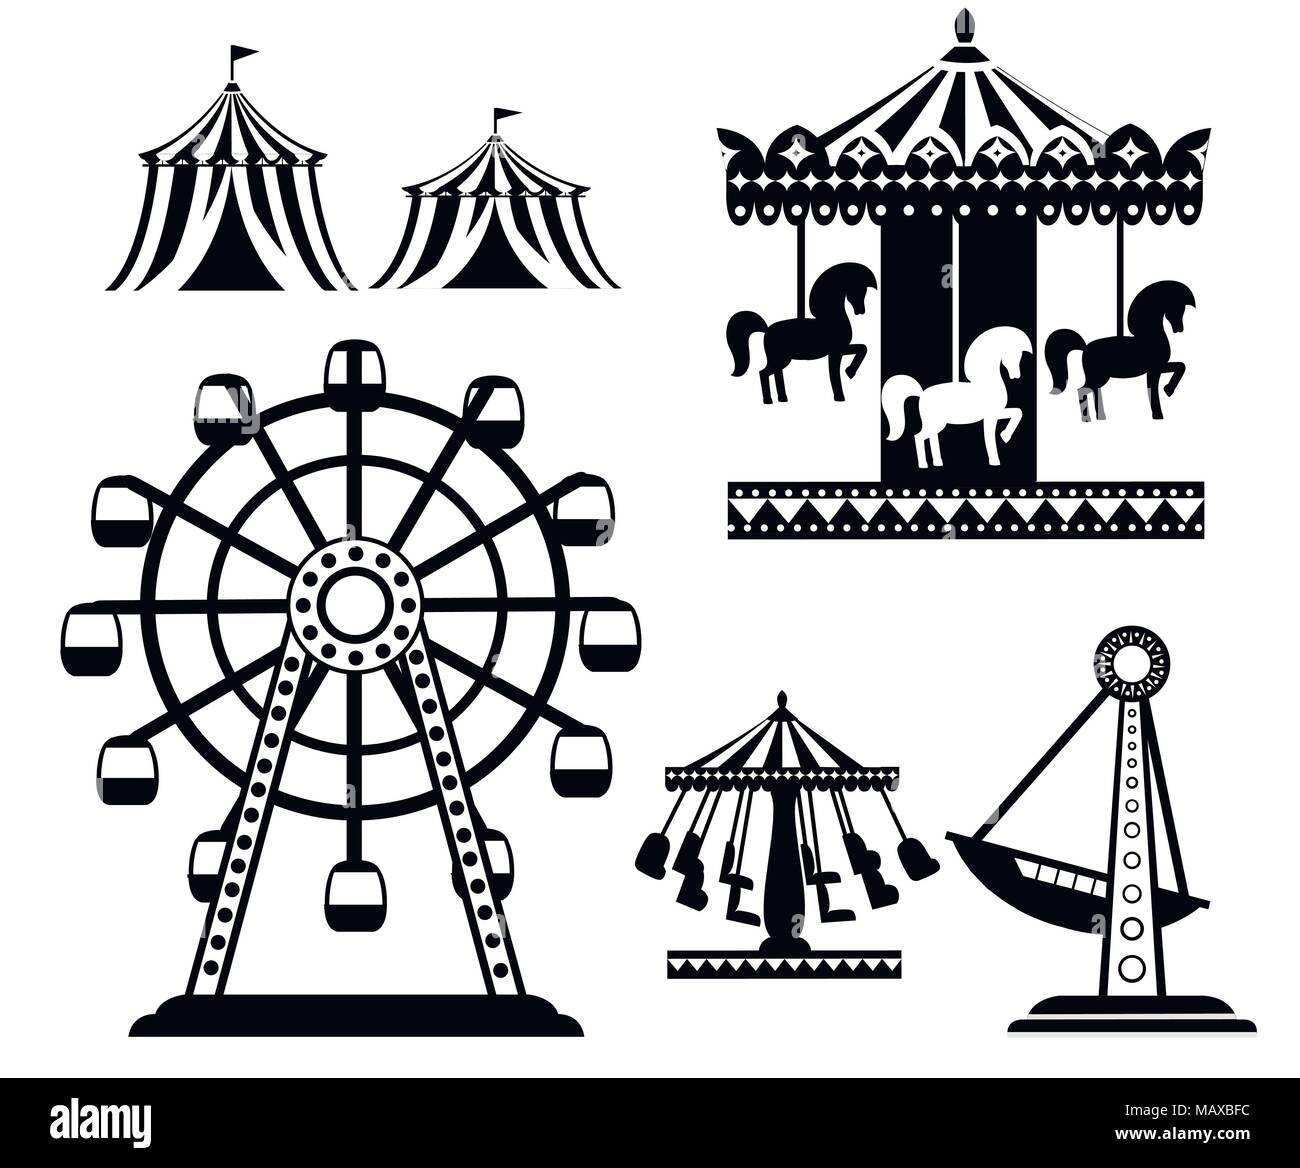 Black Silhouette Set Of Carnival Circus Icons Amusement Park Collection Tent Carousel Ferris Wheel Pirate Ship Cartoon Style Design Vector Ill Stock Vector Image Art Alamy